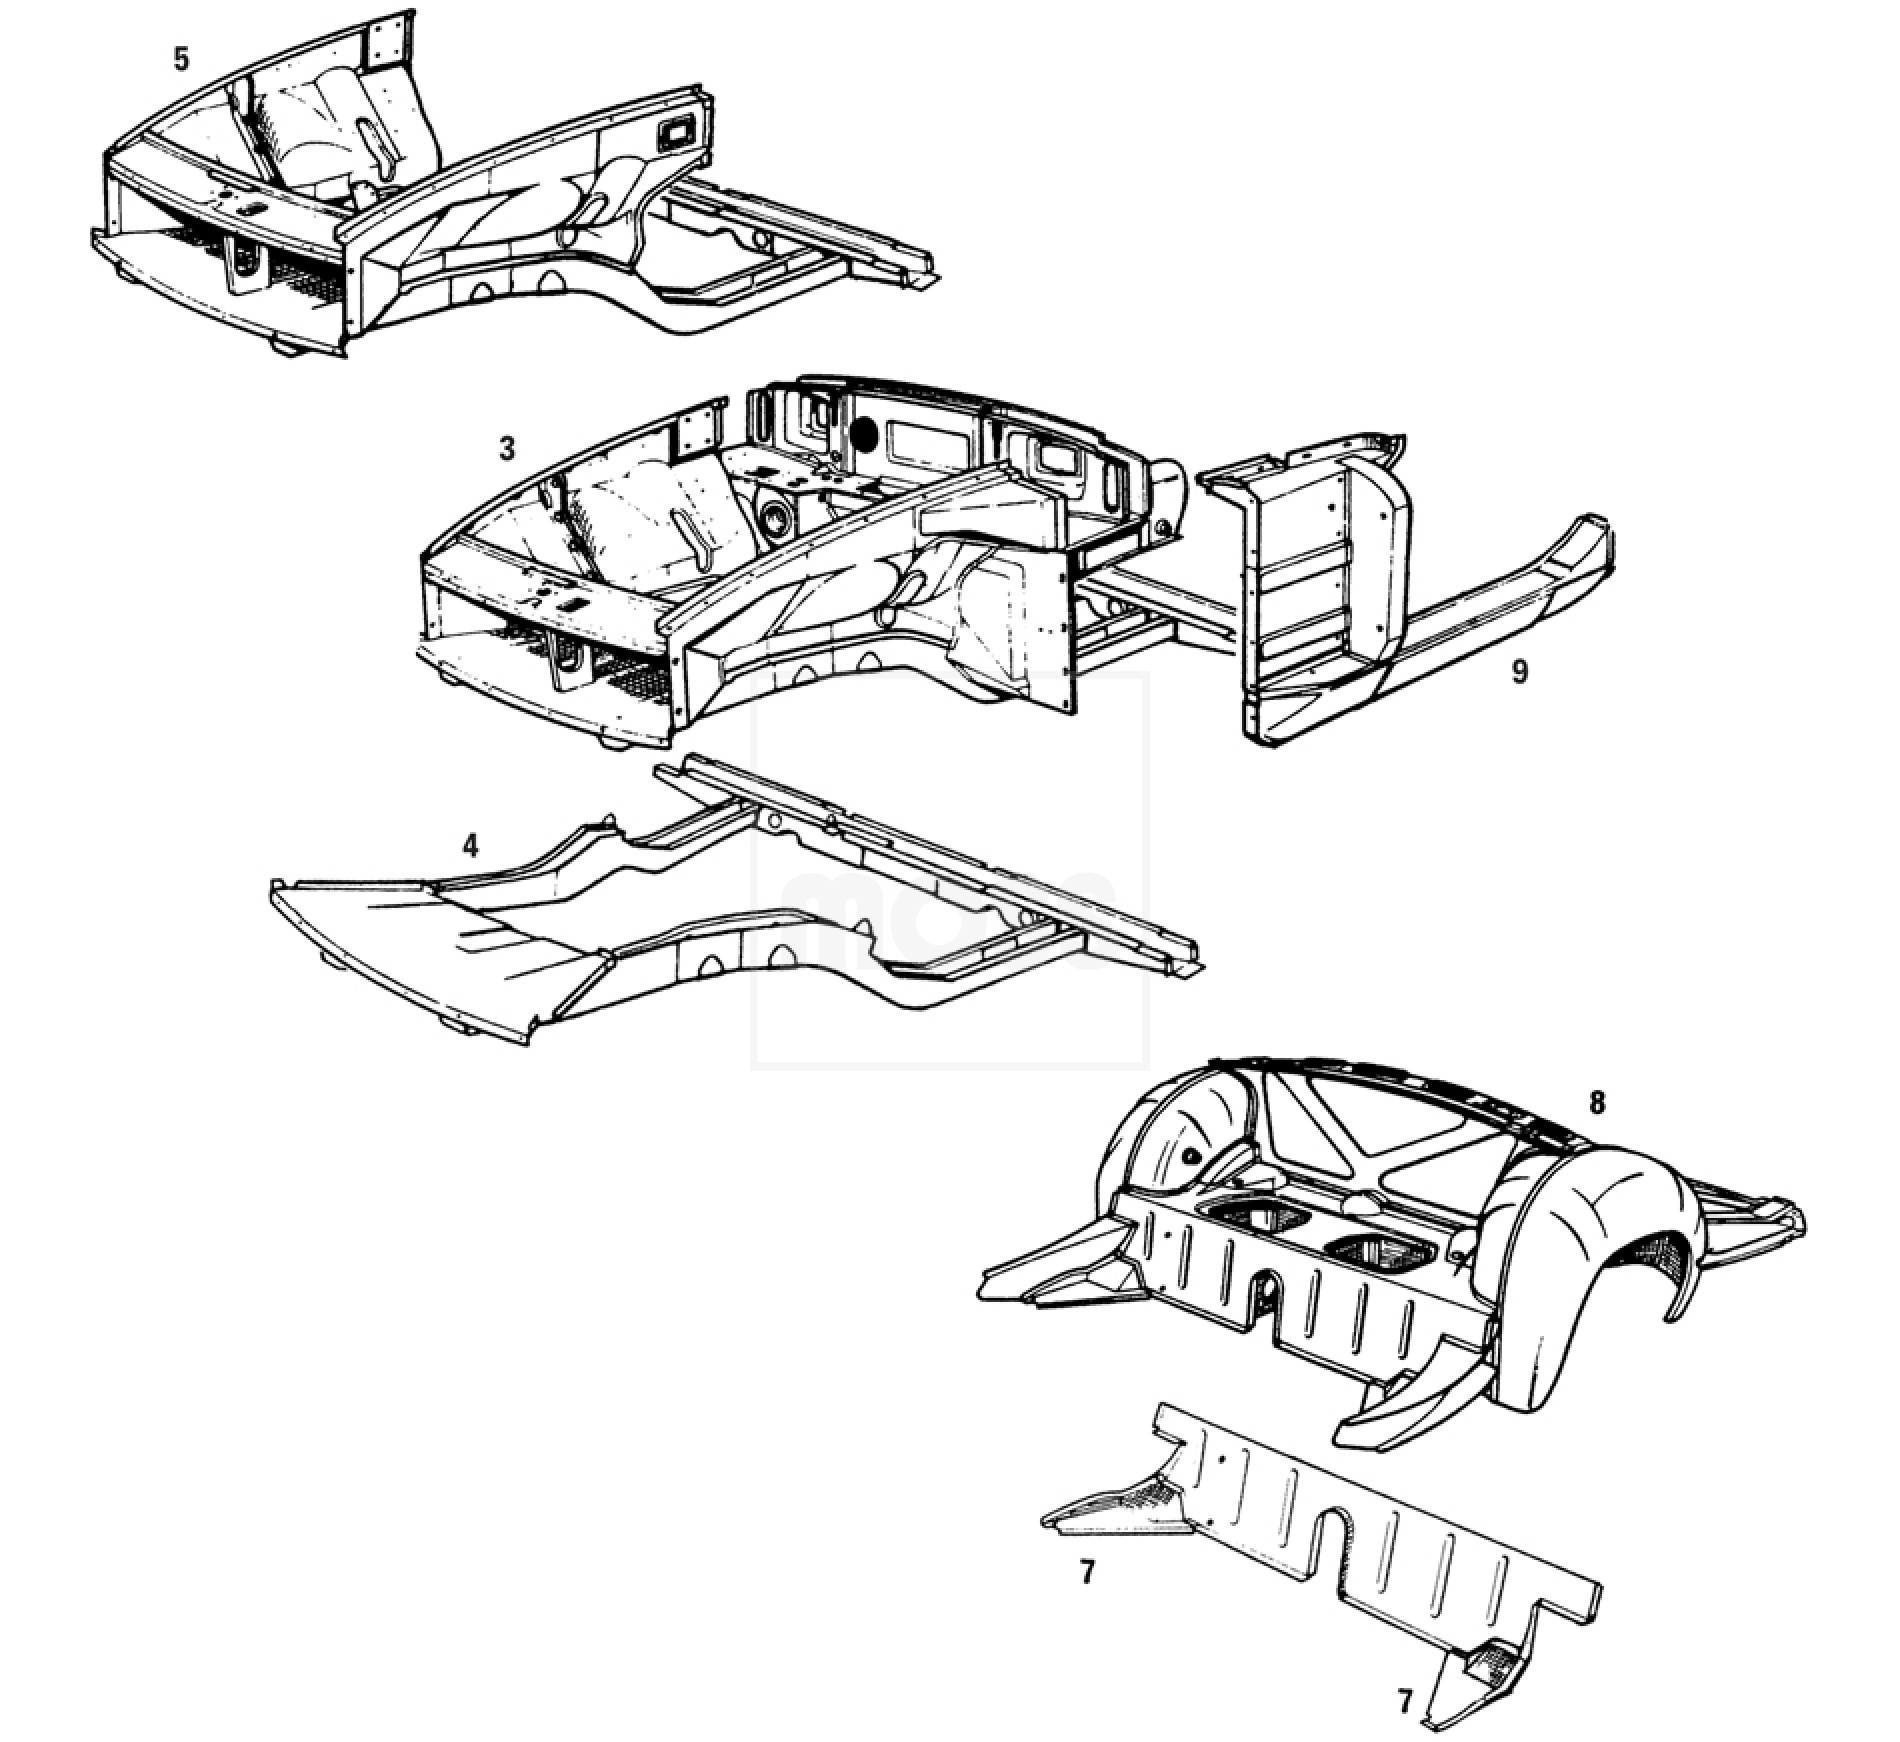 Chassis Sub Assemblies